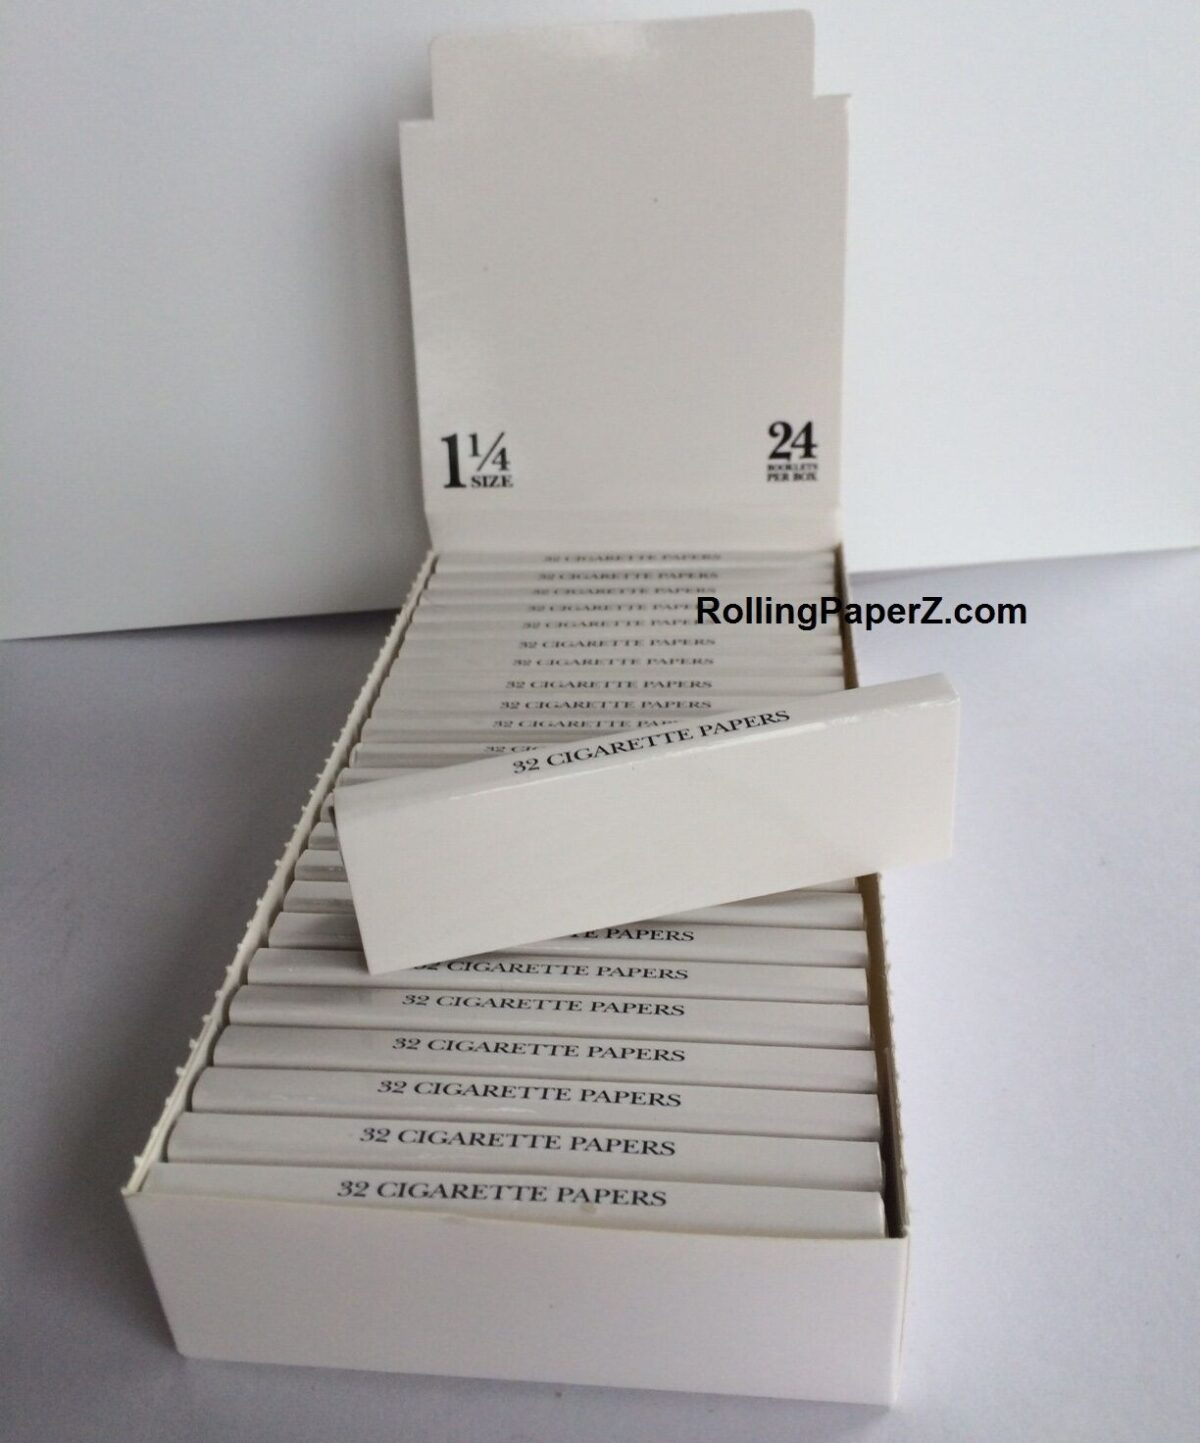 BOX of 24 Packs PLAIN BLANK Cigarette Rolling Papers 1 1/4 size/ 32 leaves each